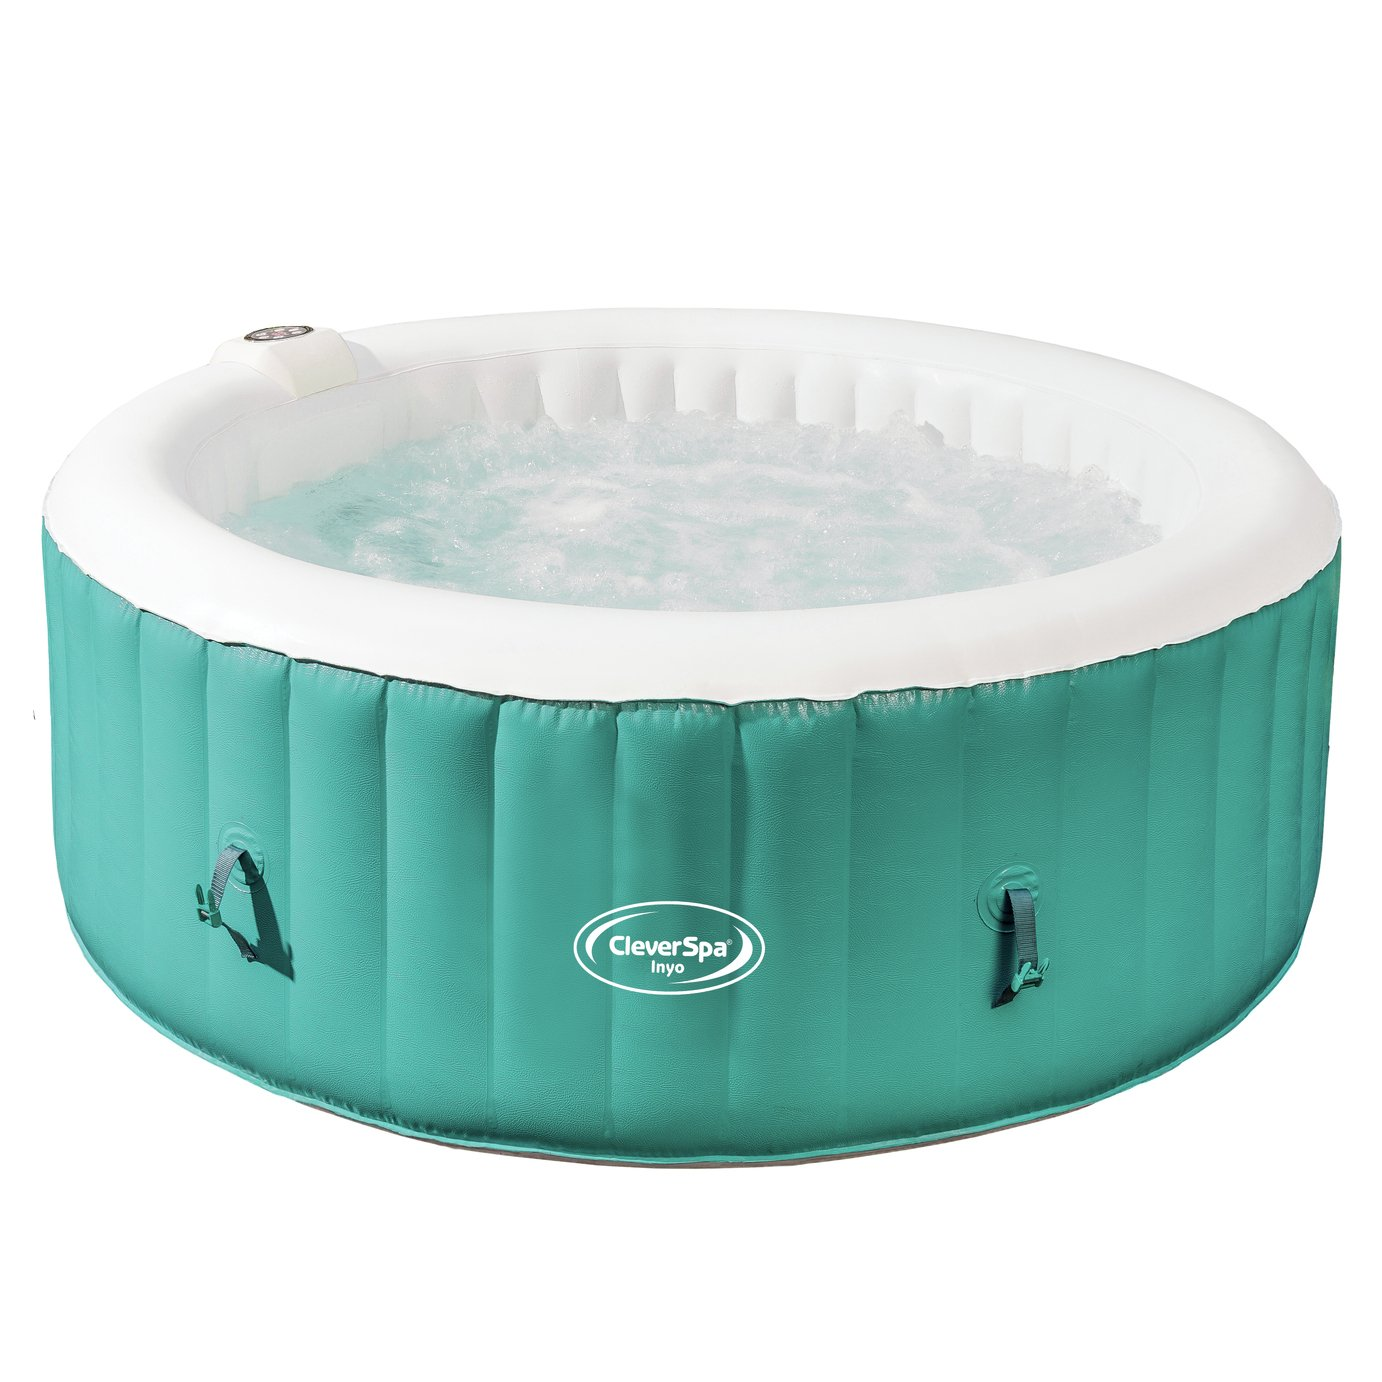 CleverSpa Inyo 4 Person Hot Tub - Home Delivery Only